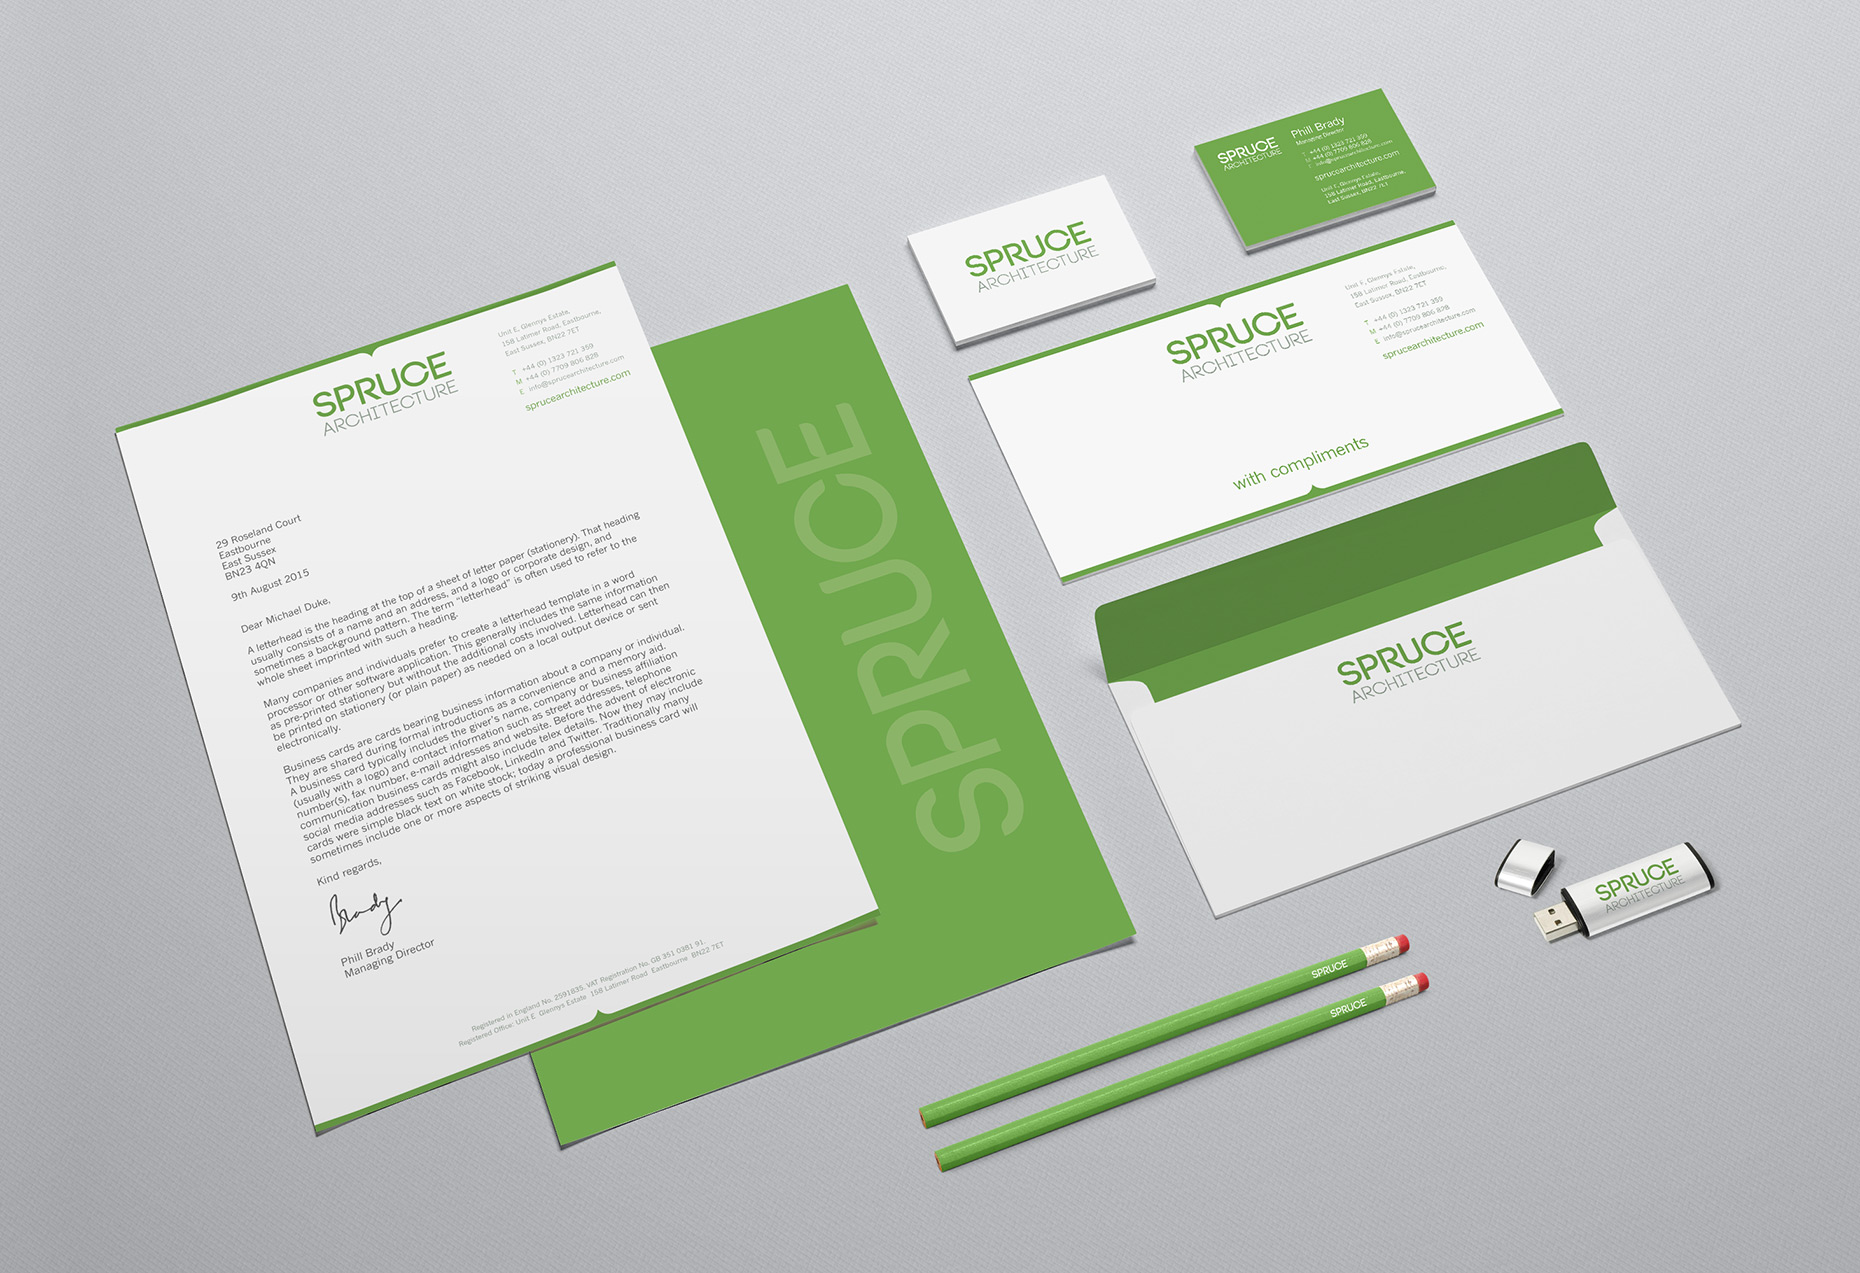 Spruce Architecture Stationery